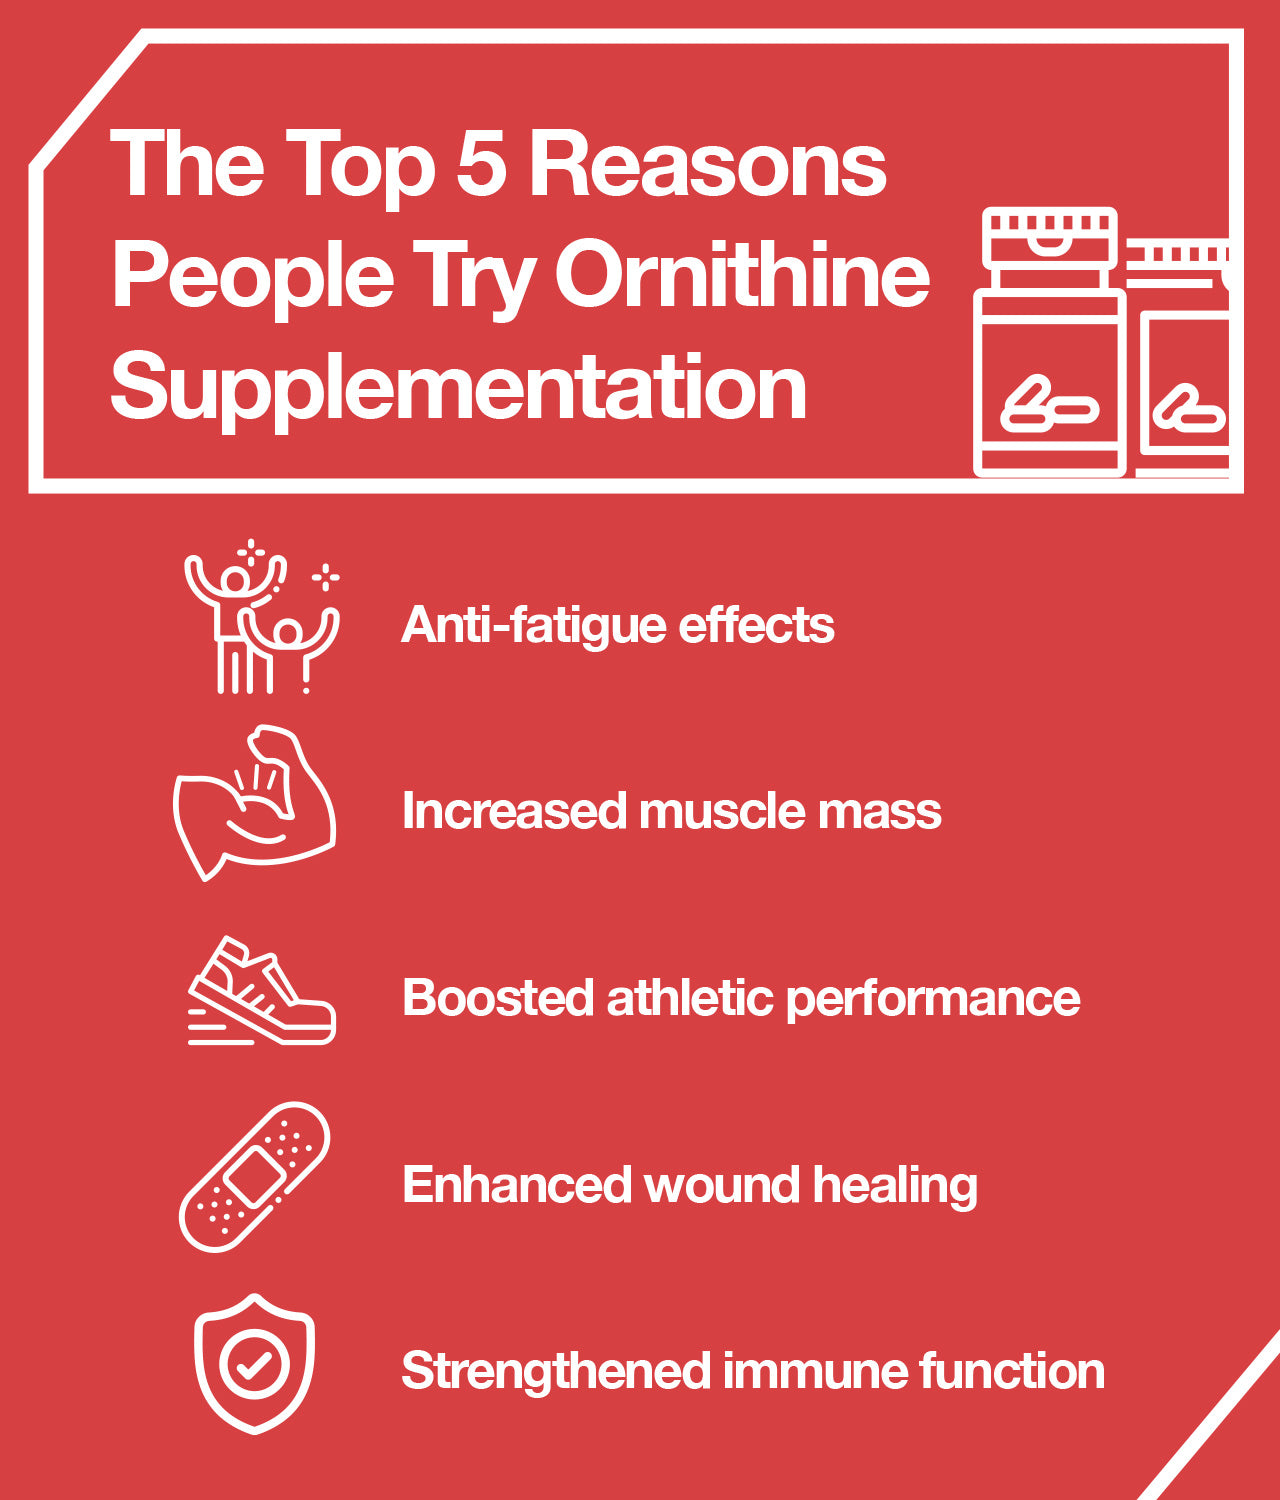 5 Top Uses for Ornithine Supplements